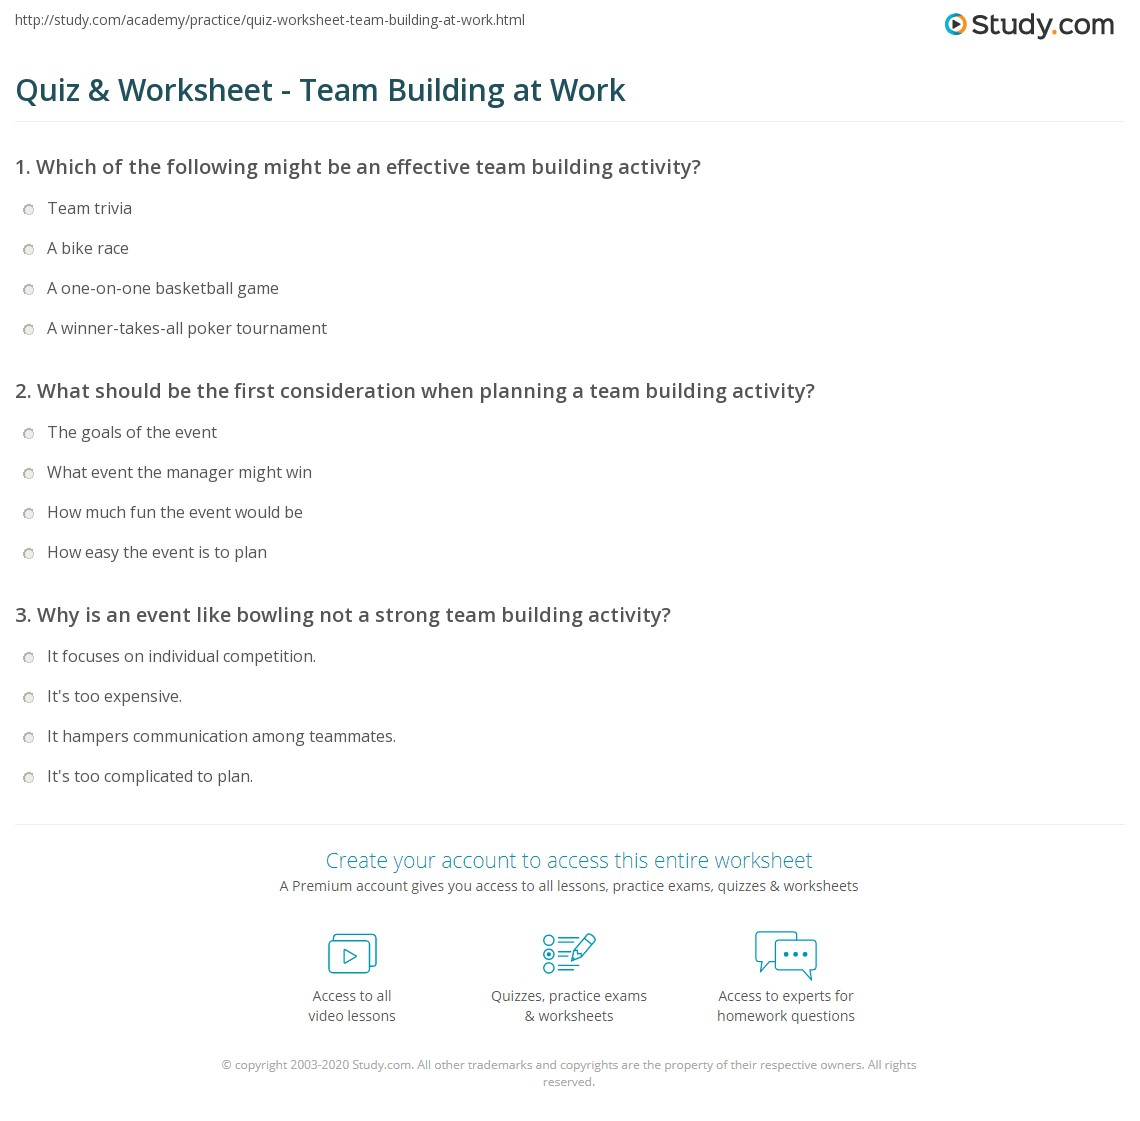 Quiz Worksheet Team Building At Work Study Com